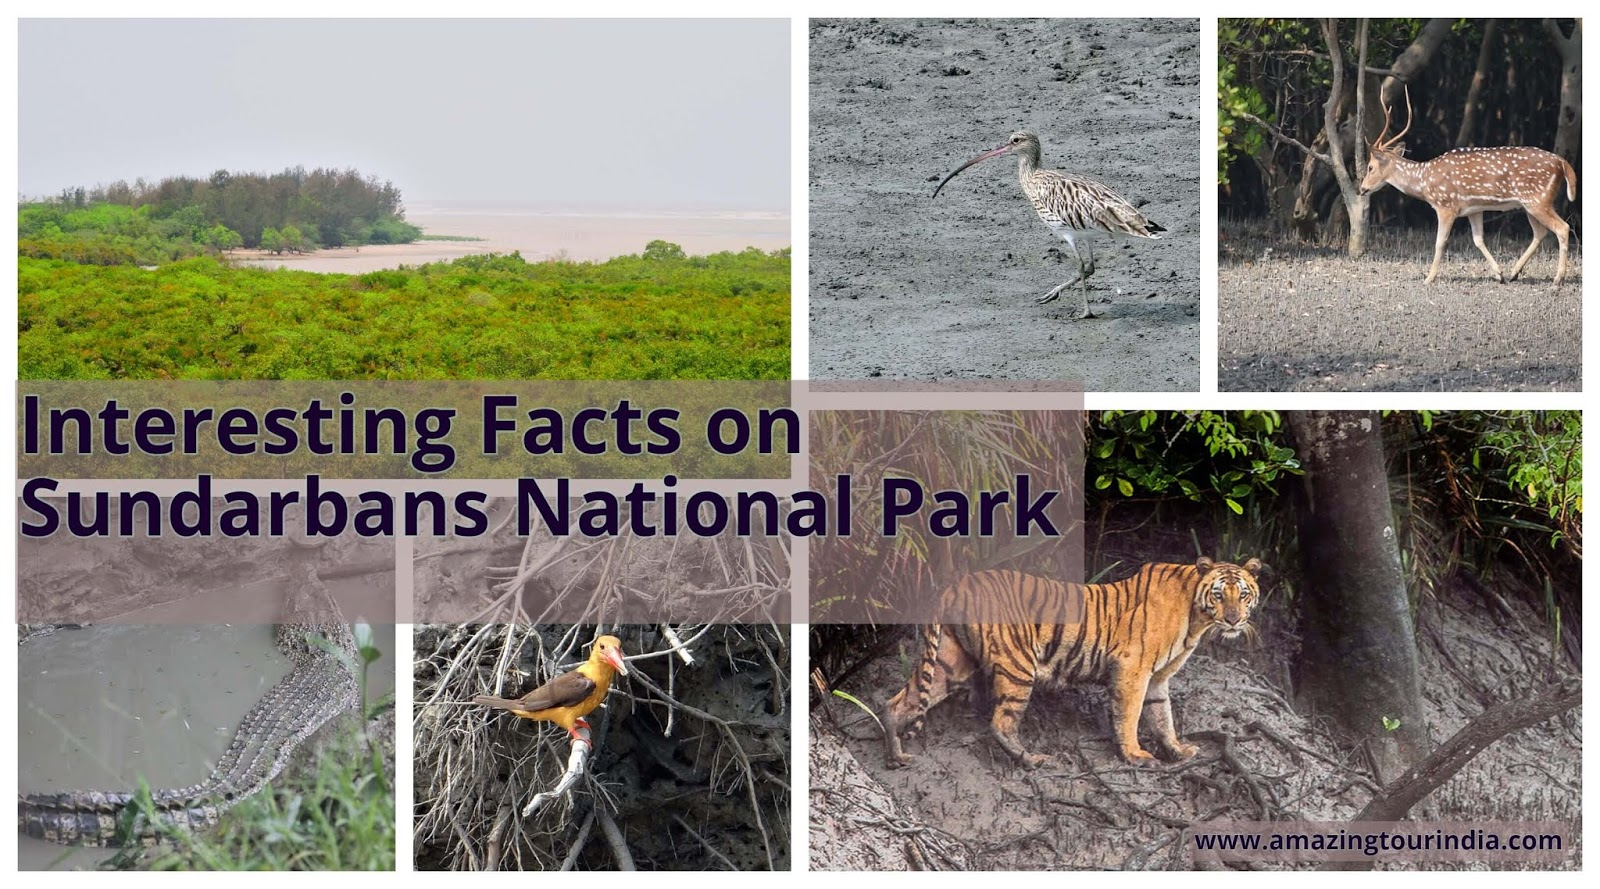 A Tourist Guide of Sundarbans National Park India- Know The Interesting Fact